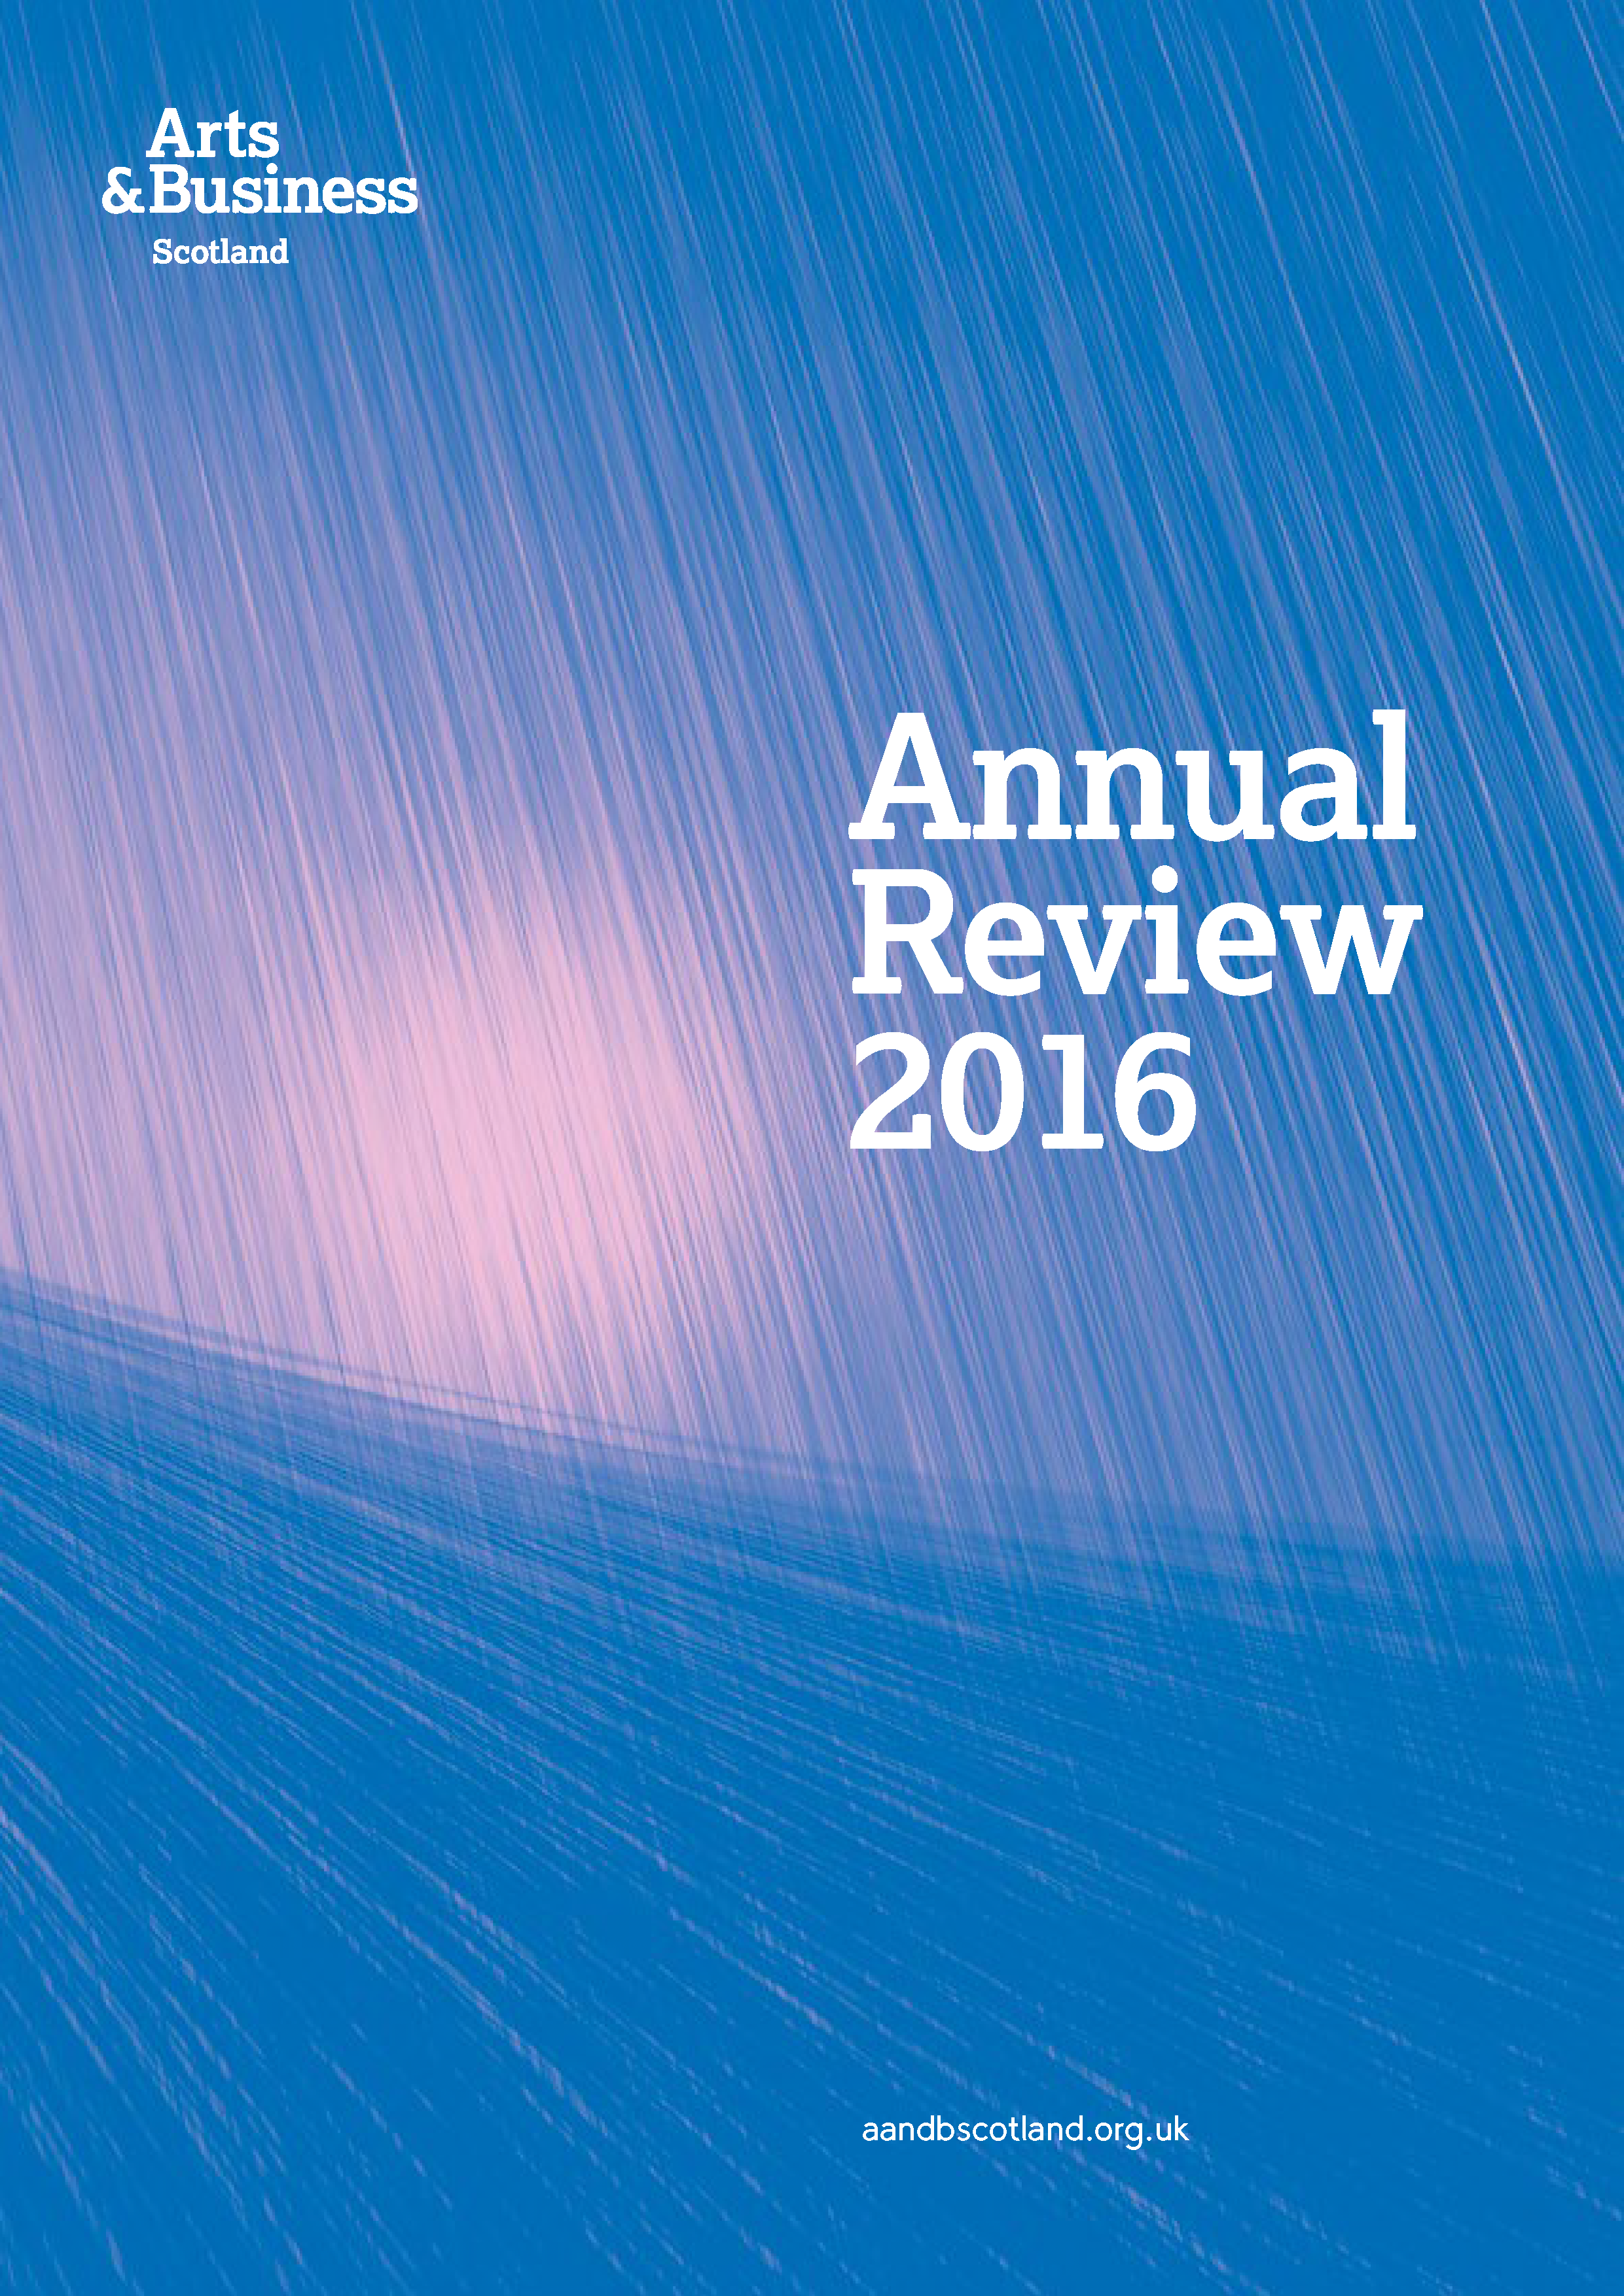 A&BS Annual Review 2016